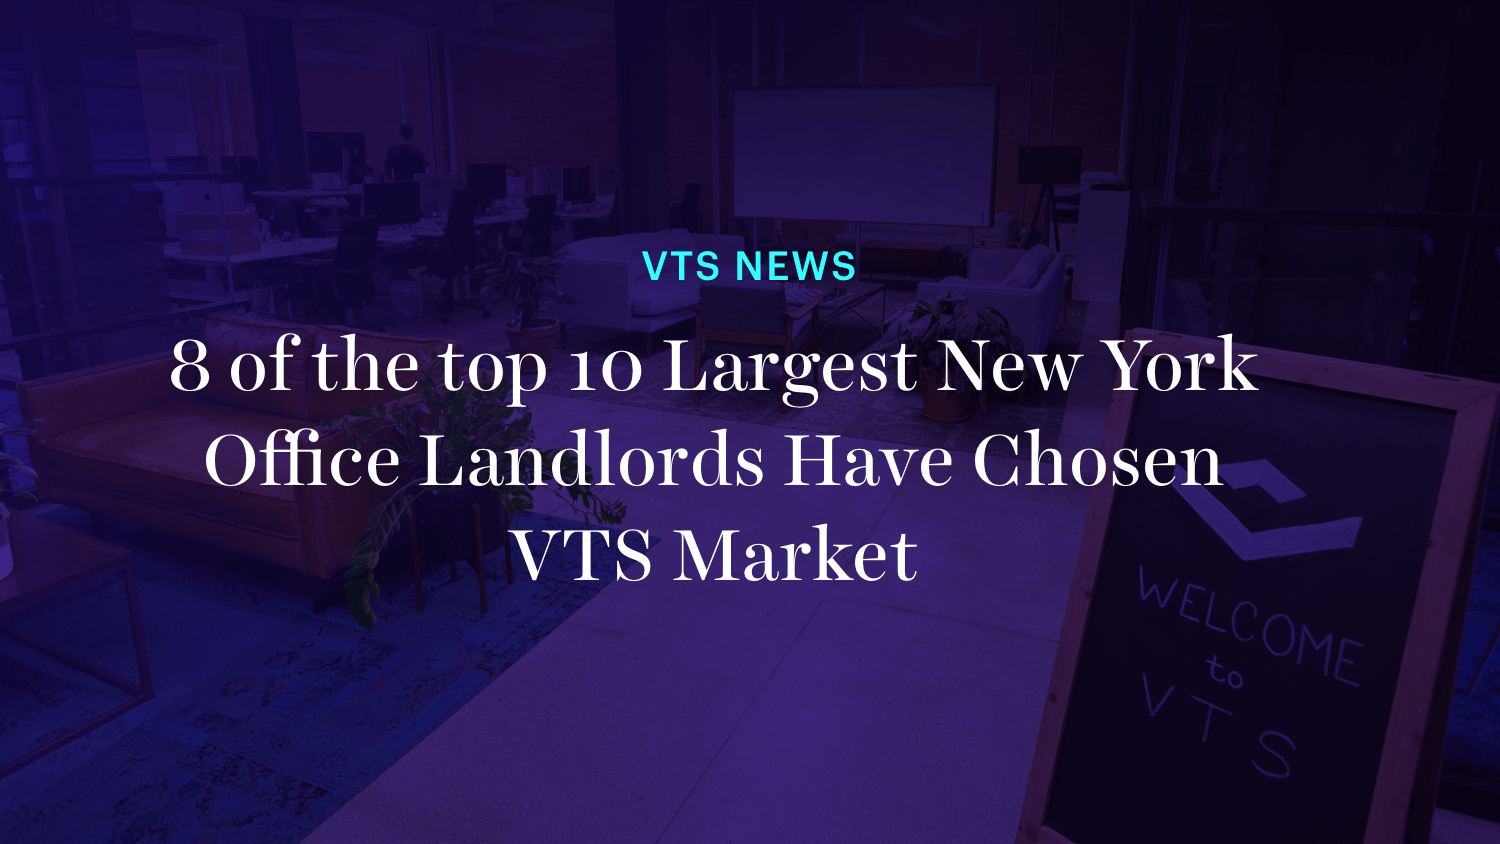 8 of the top 10 Largest New York Office Landlords Have Chosen VTS Market